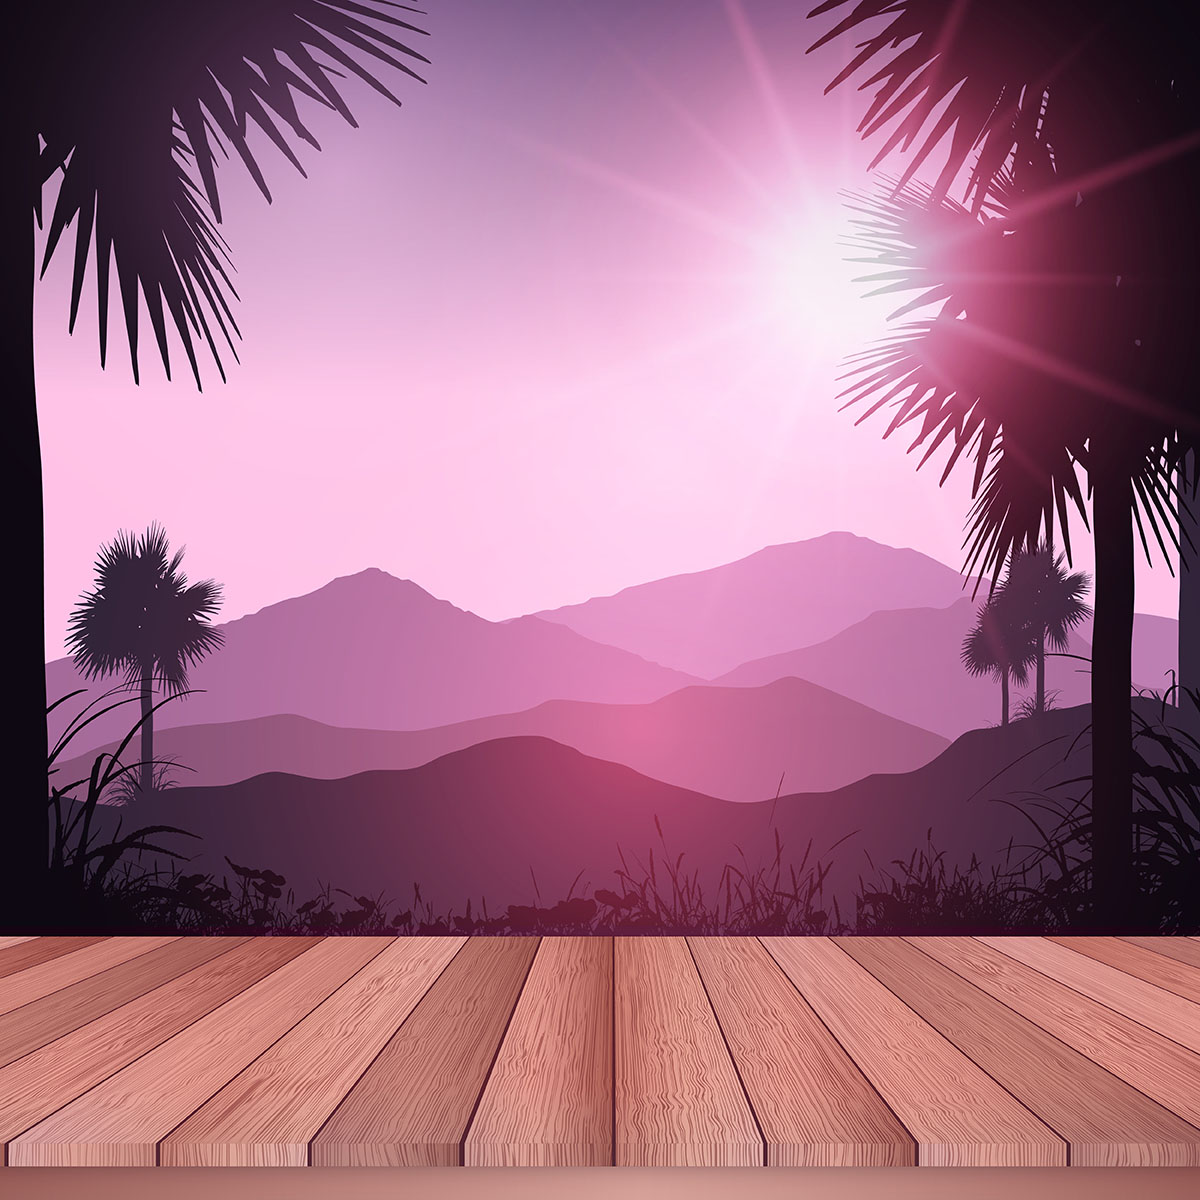 Wooden deck looking out to tropical landscape